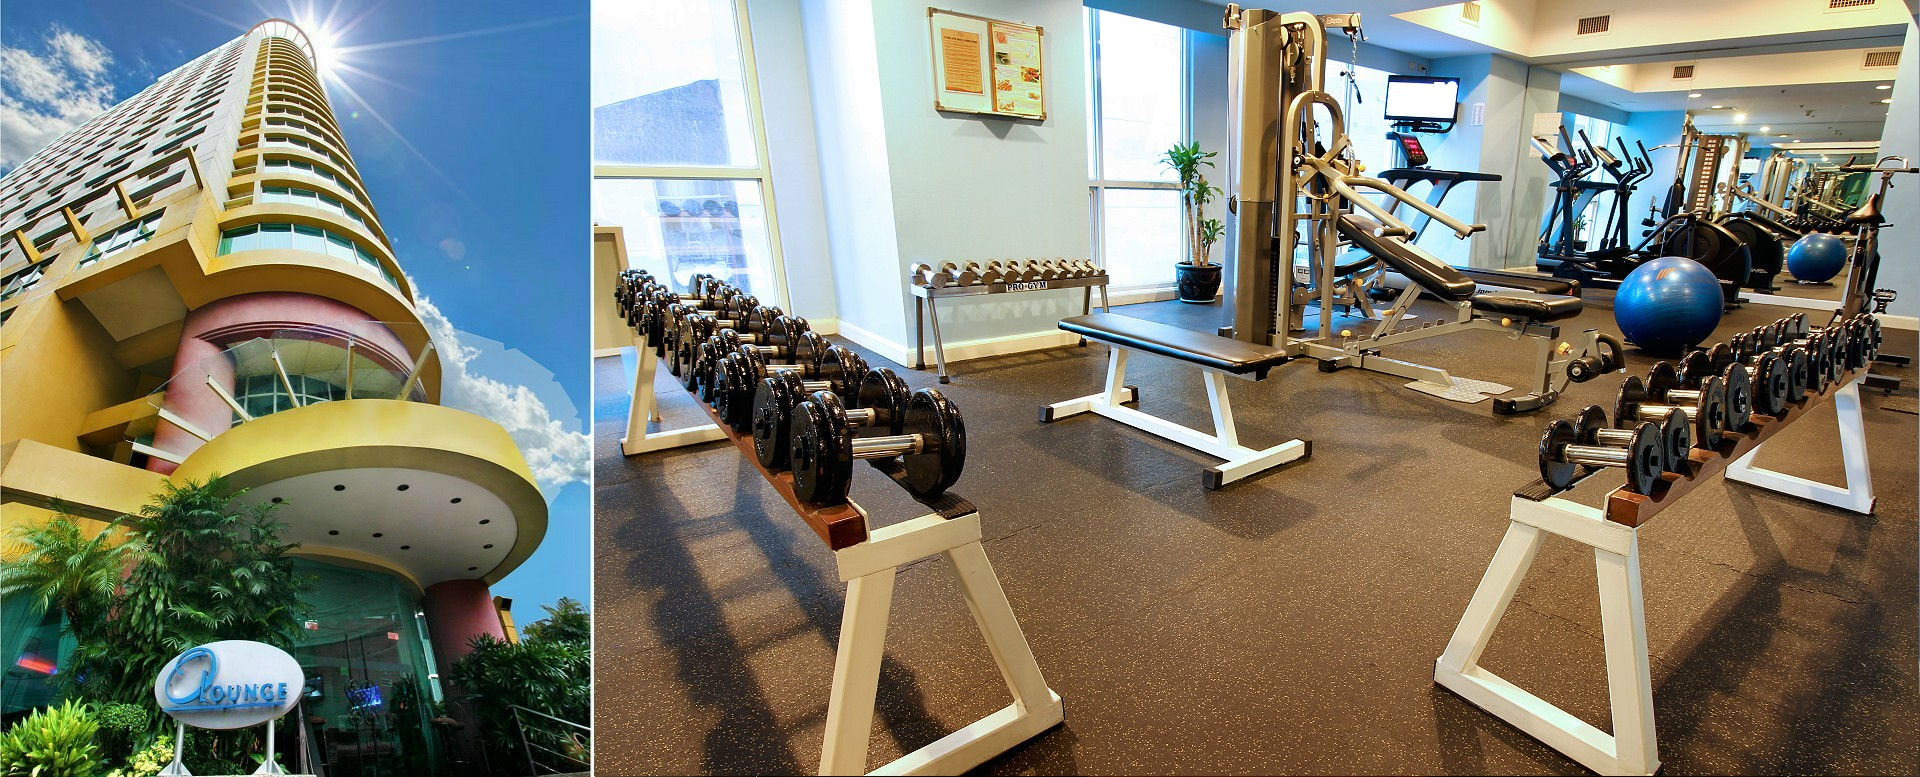 Best Western Oxford Suites - Fitness Room